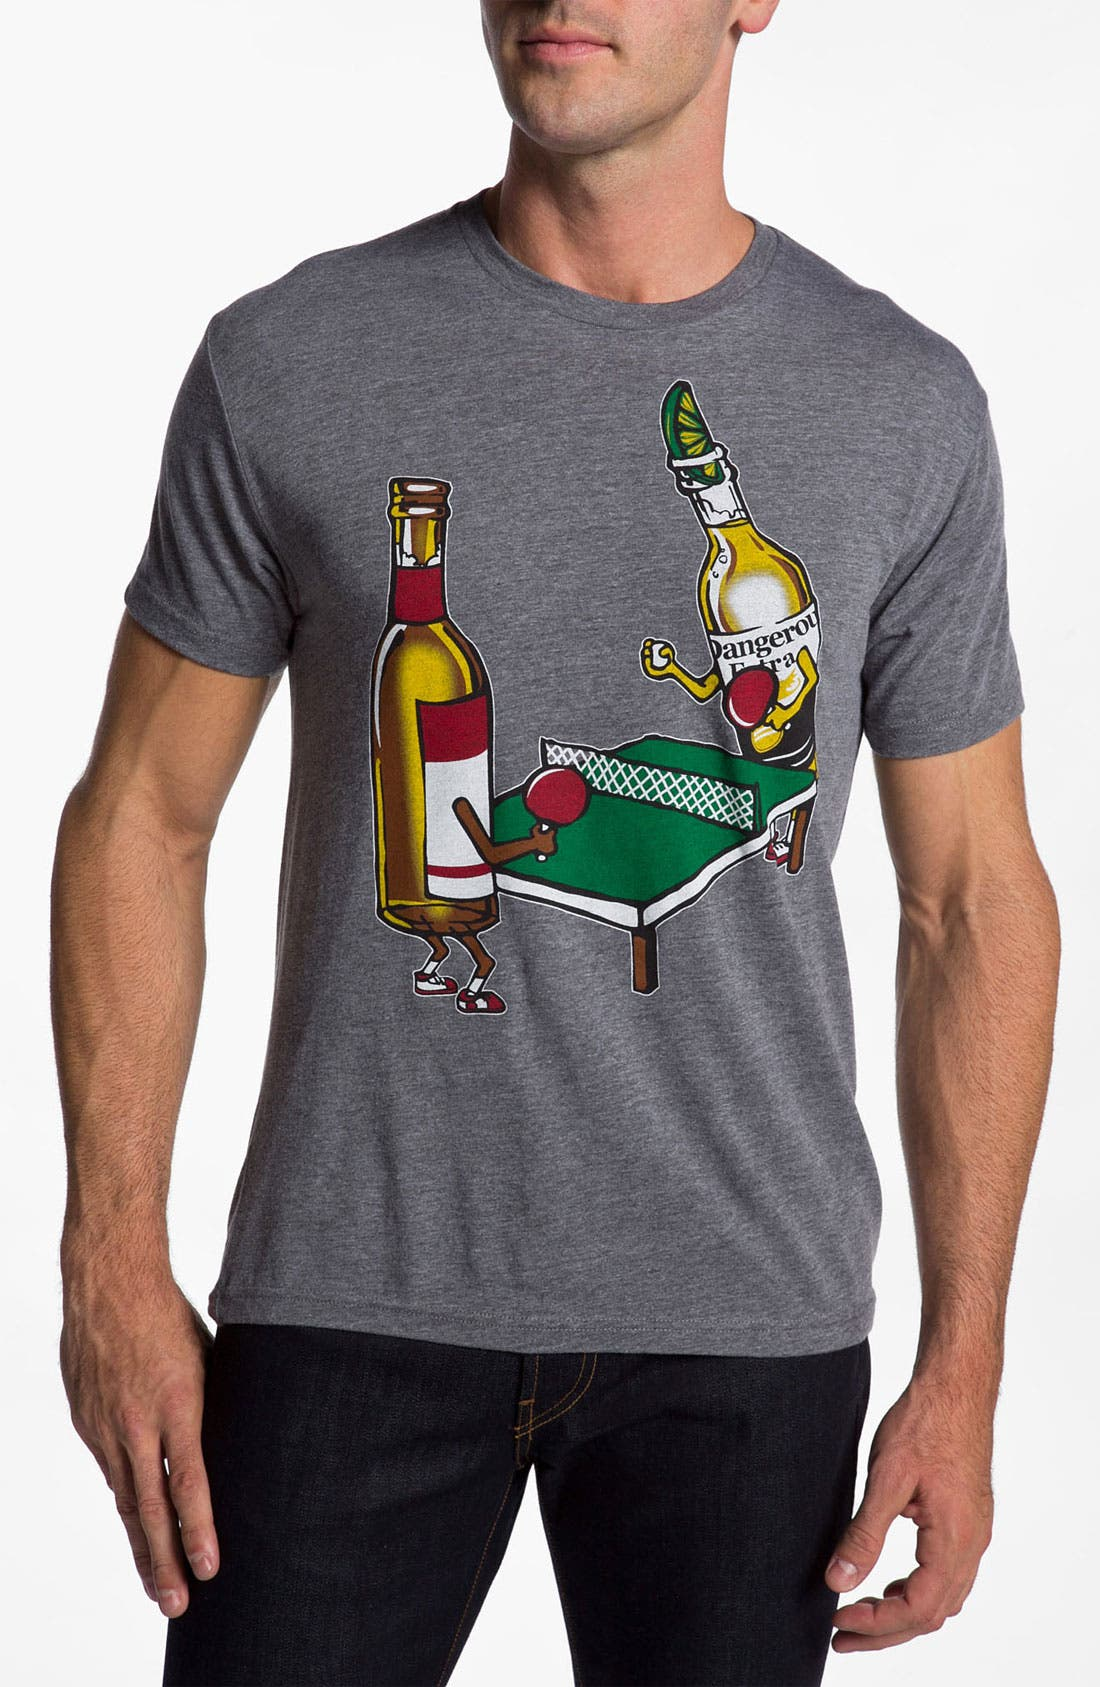 Main Image - Kid Dangerous Grime Couture 'Beer Pong' Graphic T-Shirt